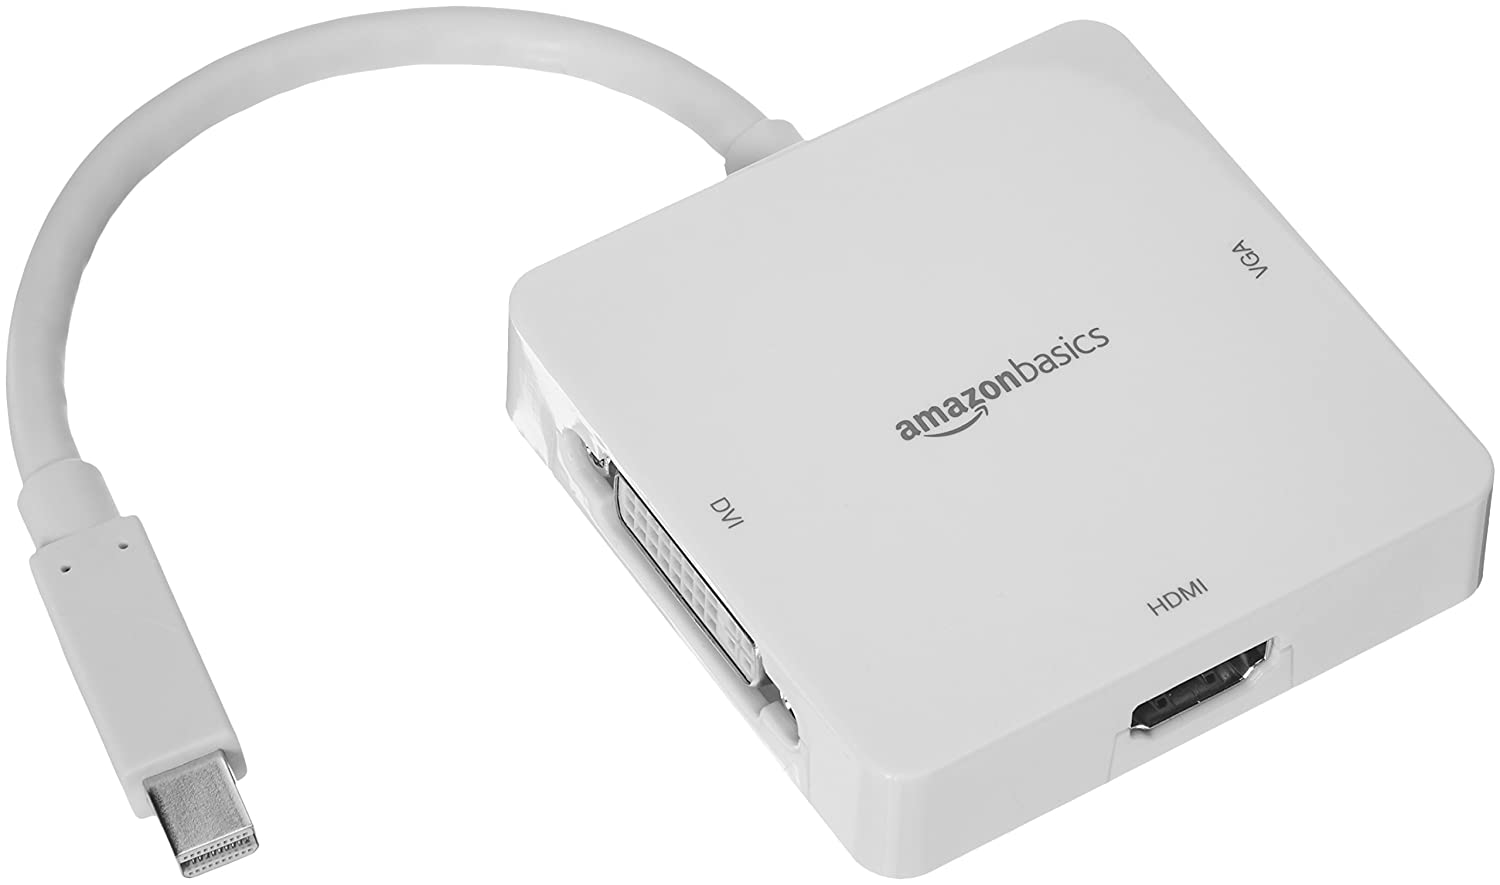 AmazonBasics Mini DisplayPort to HDMI/DVI/VGA Adapter - White